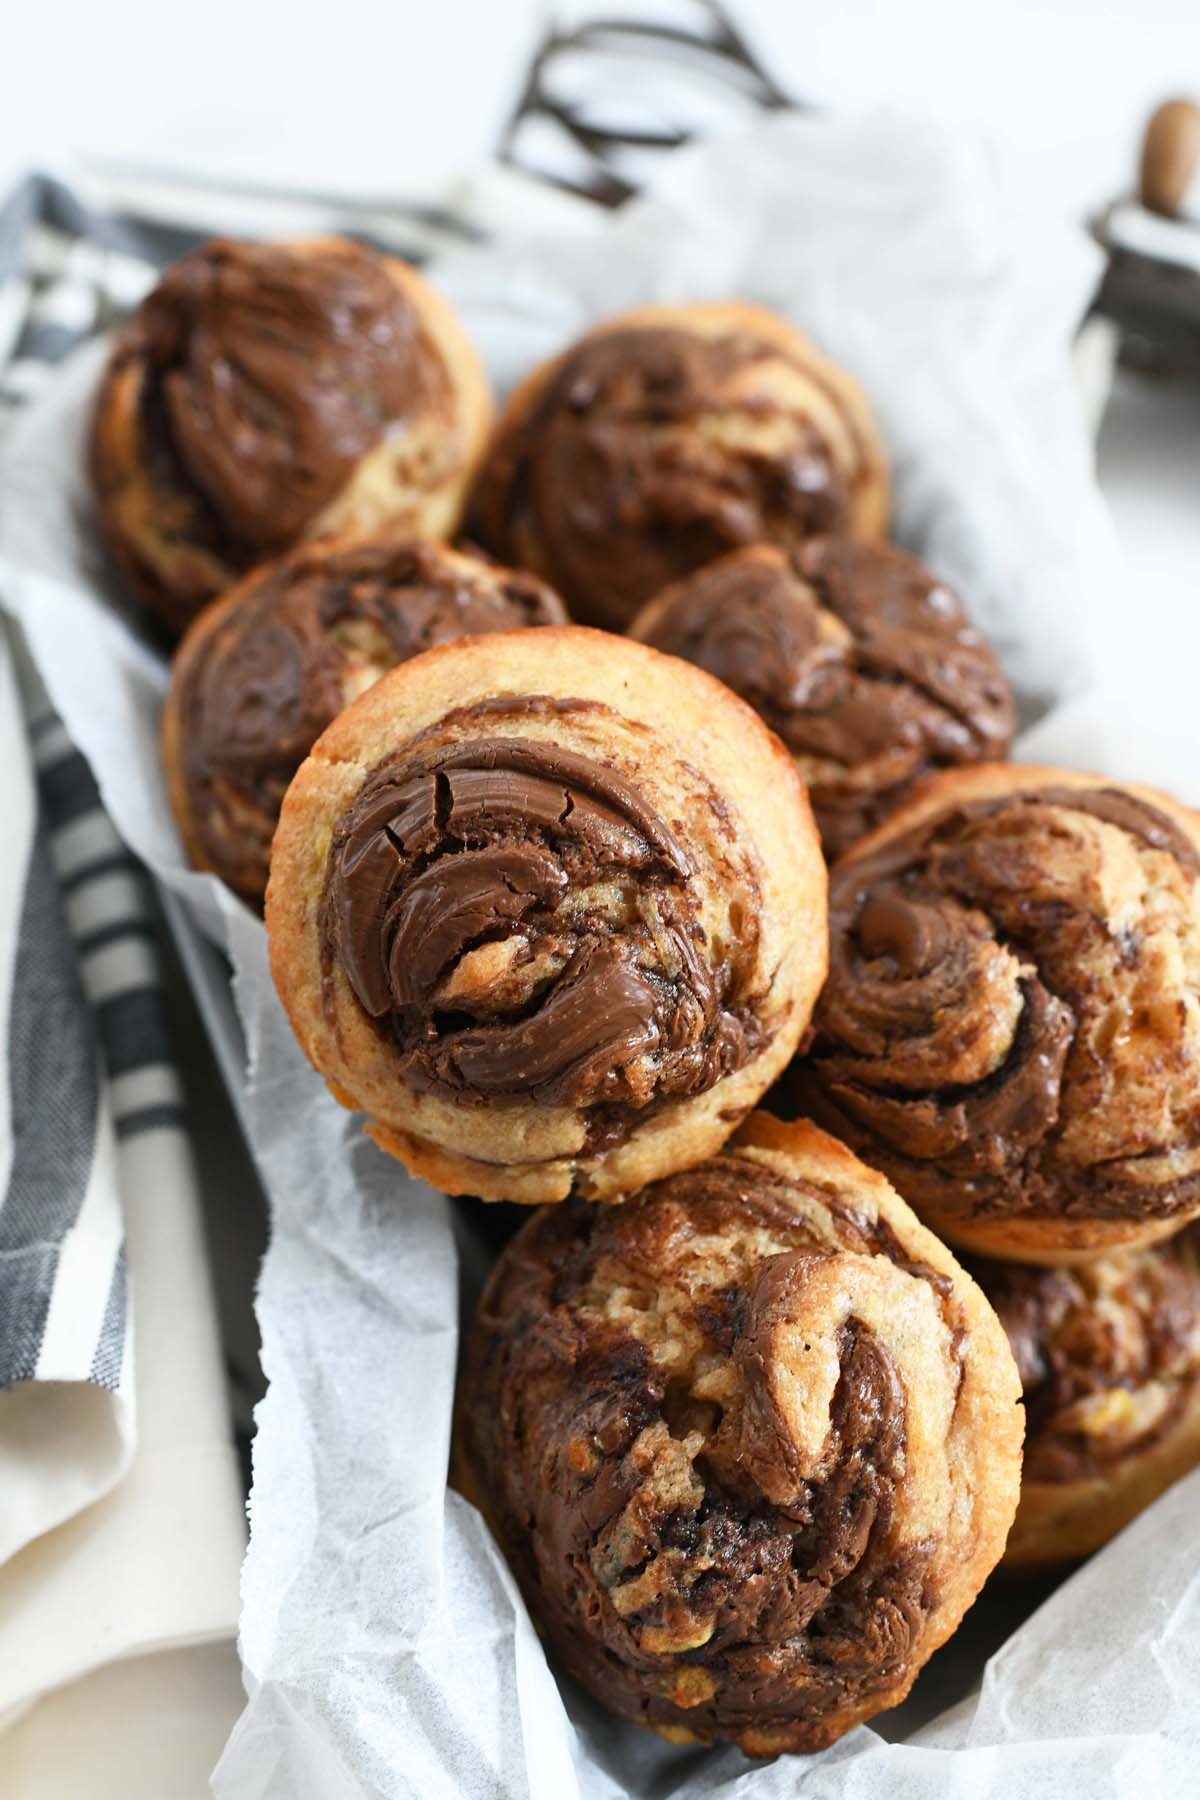 Banana Hazelnut muffins recipe in a parchment lined pan. there is a striped napkin nearby.